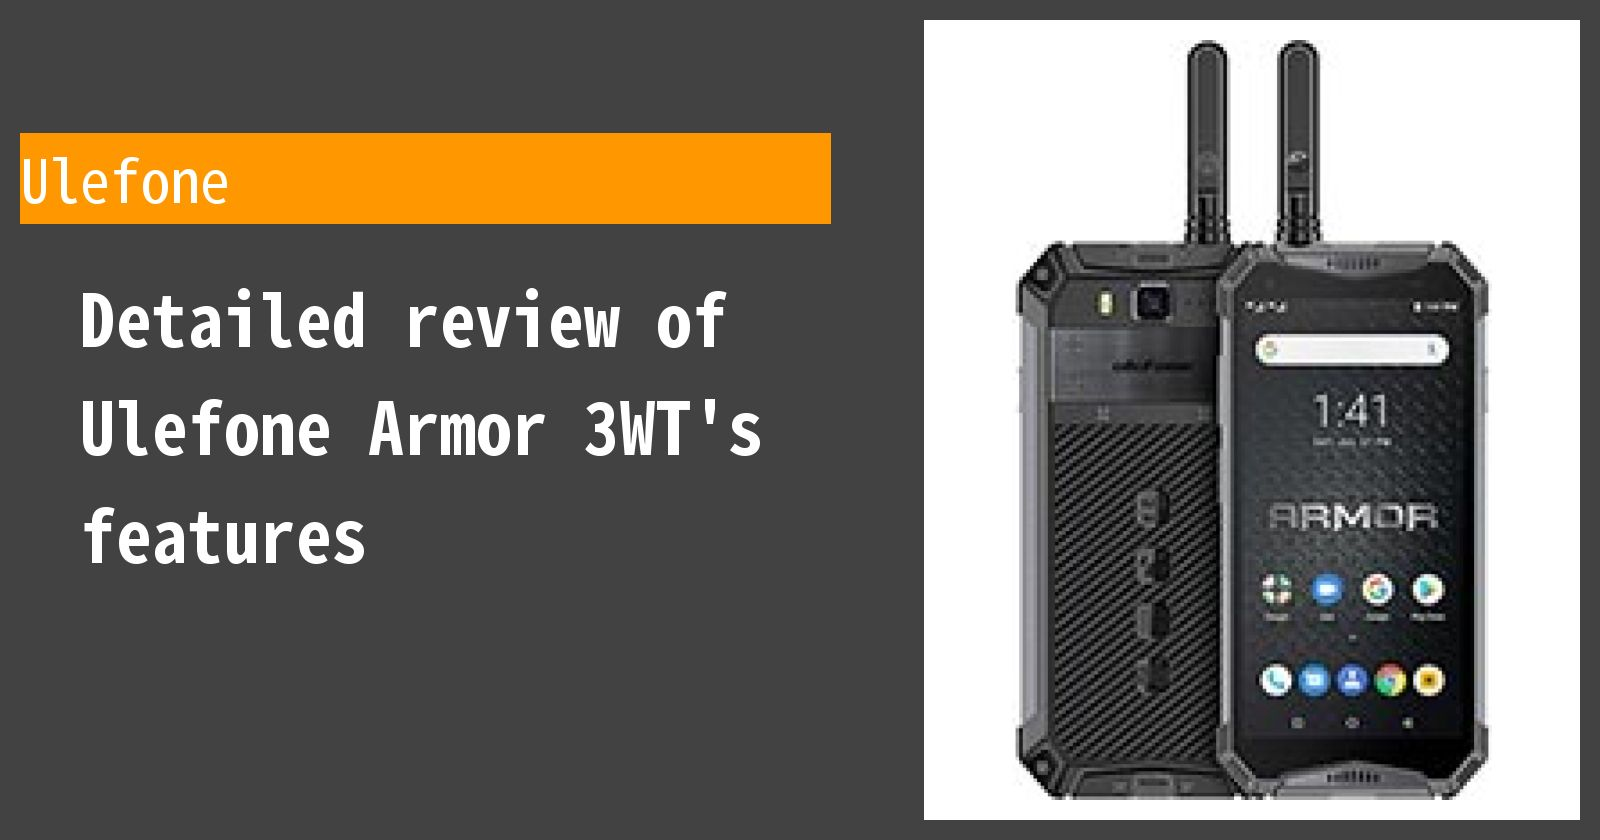 Detailed review of Ulefone Armor 3WT's features